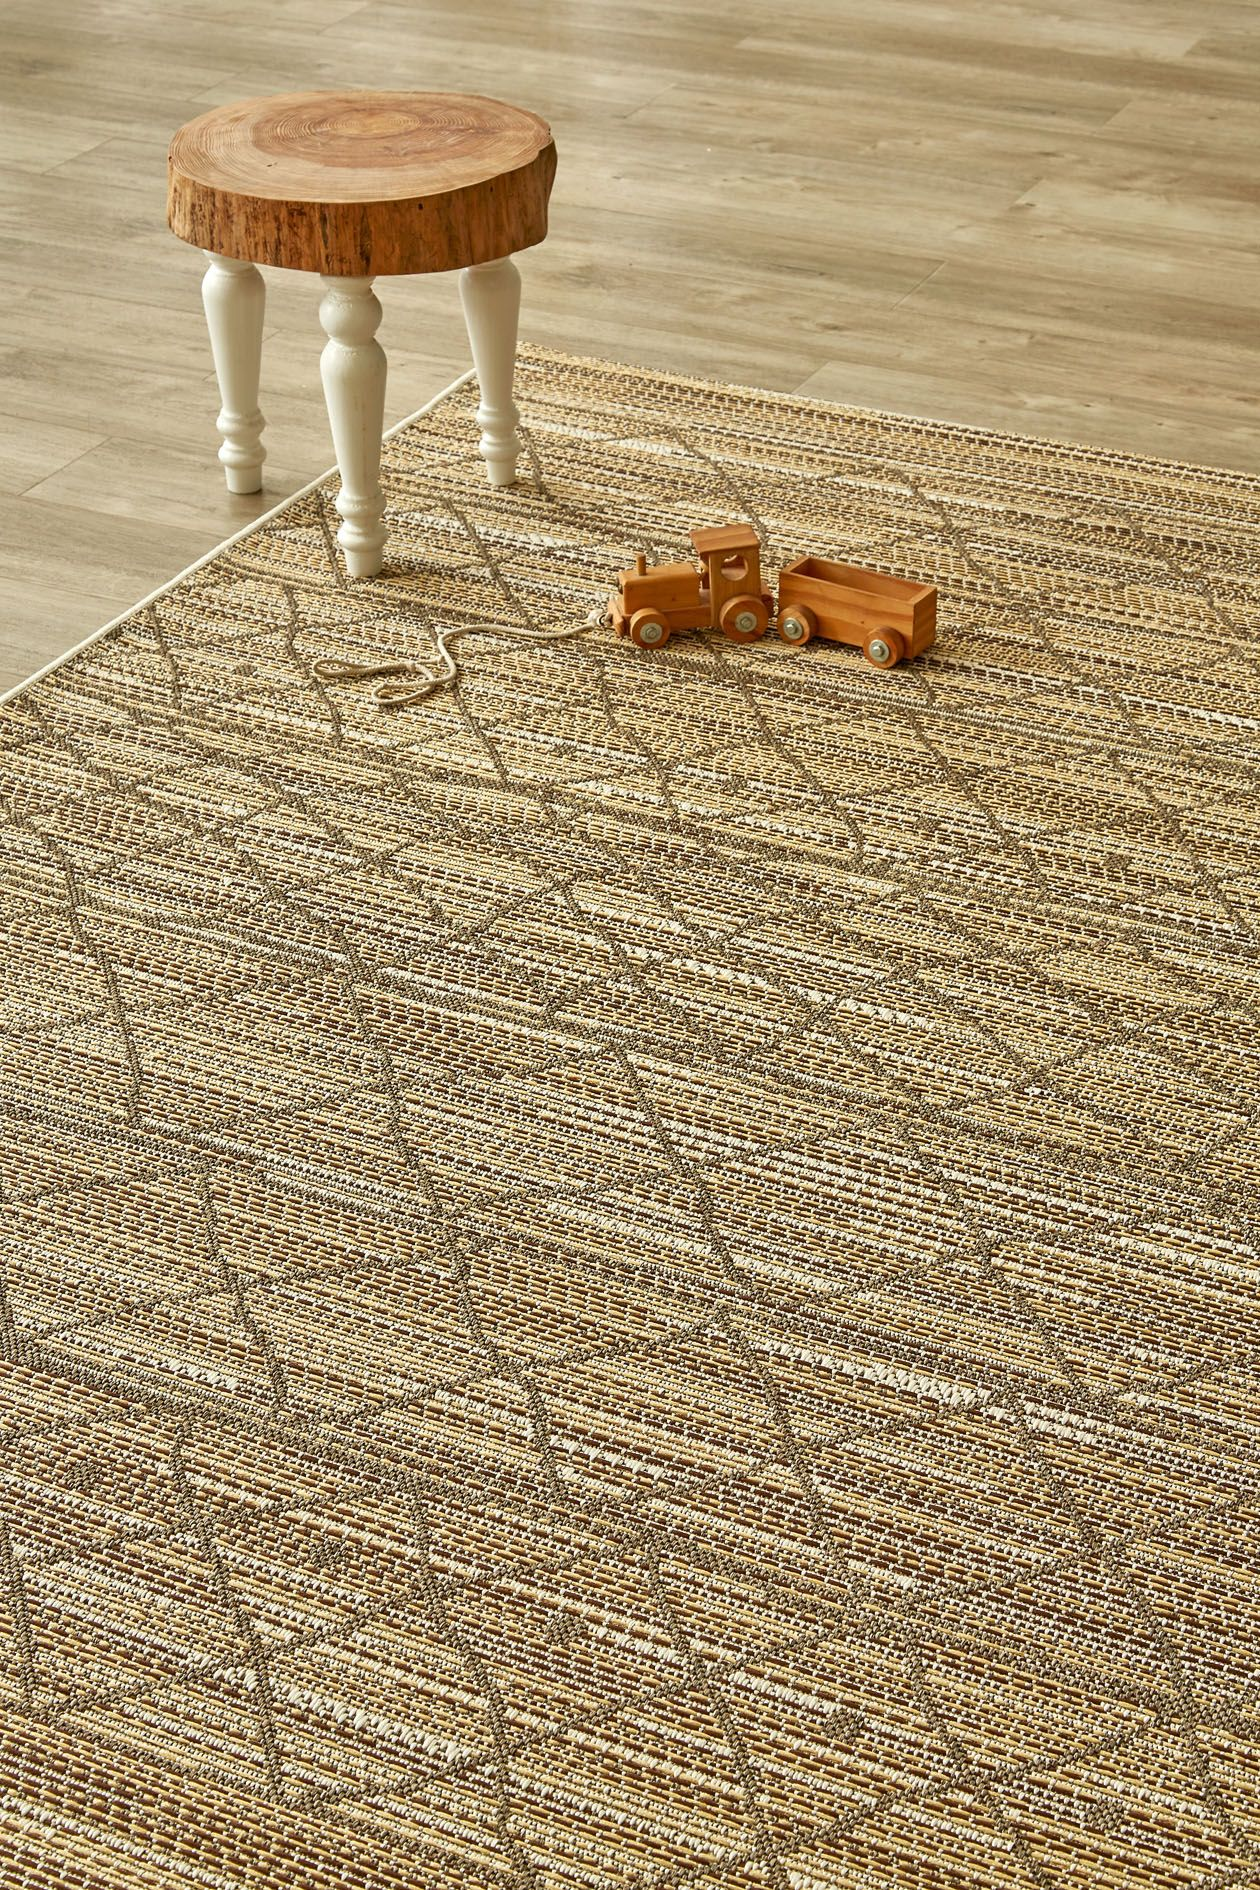 Outdoor rugs carpets waterresistant Rugs, Rug shopping